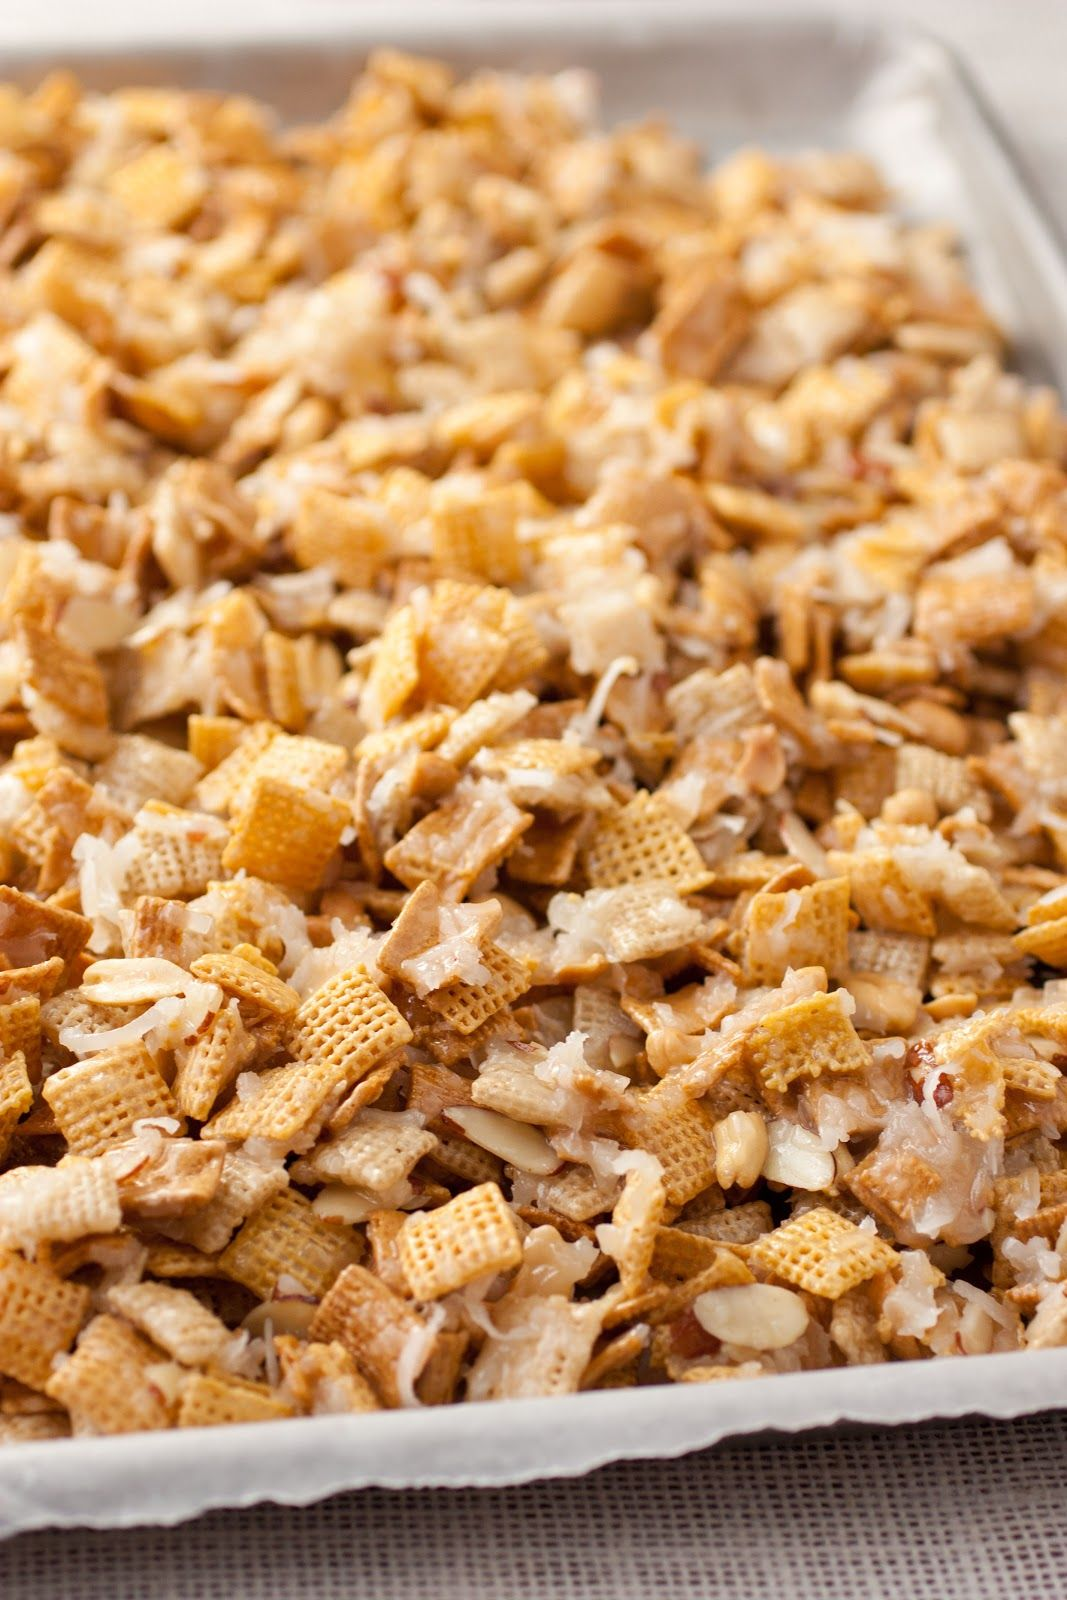 Sweet holiday chex mix highly addictive this makes the perfect my favorite recipe sweet holiday chex mix highly addictive this makes the perfect christmas gift and it only takes about 10 minutes to make ccuart Image collections